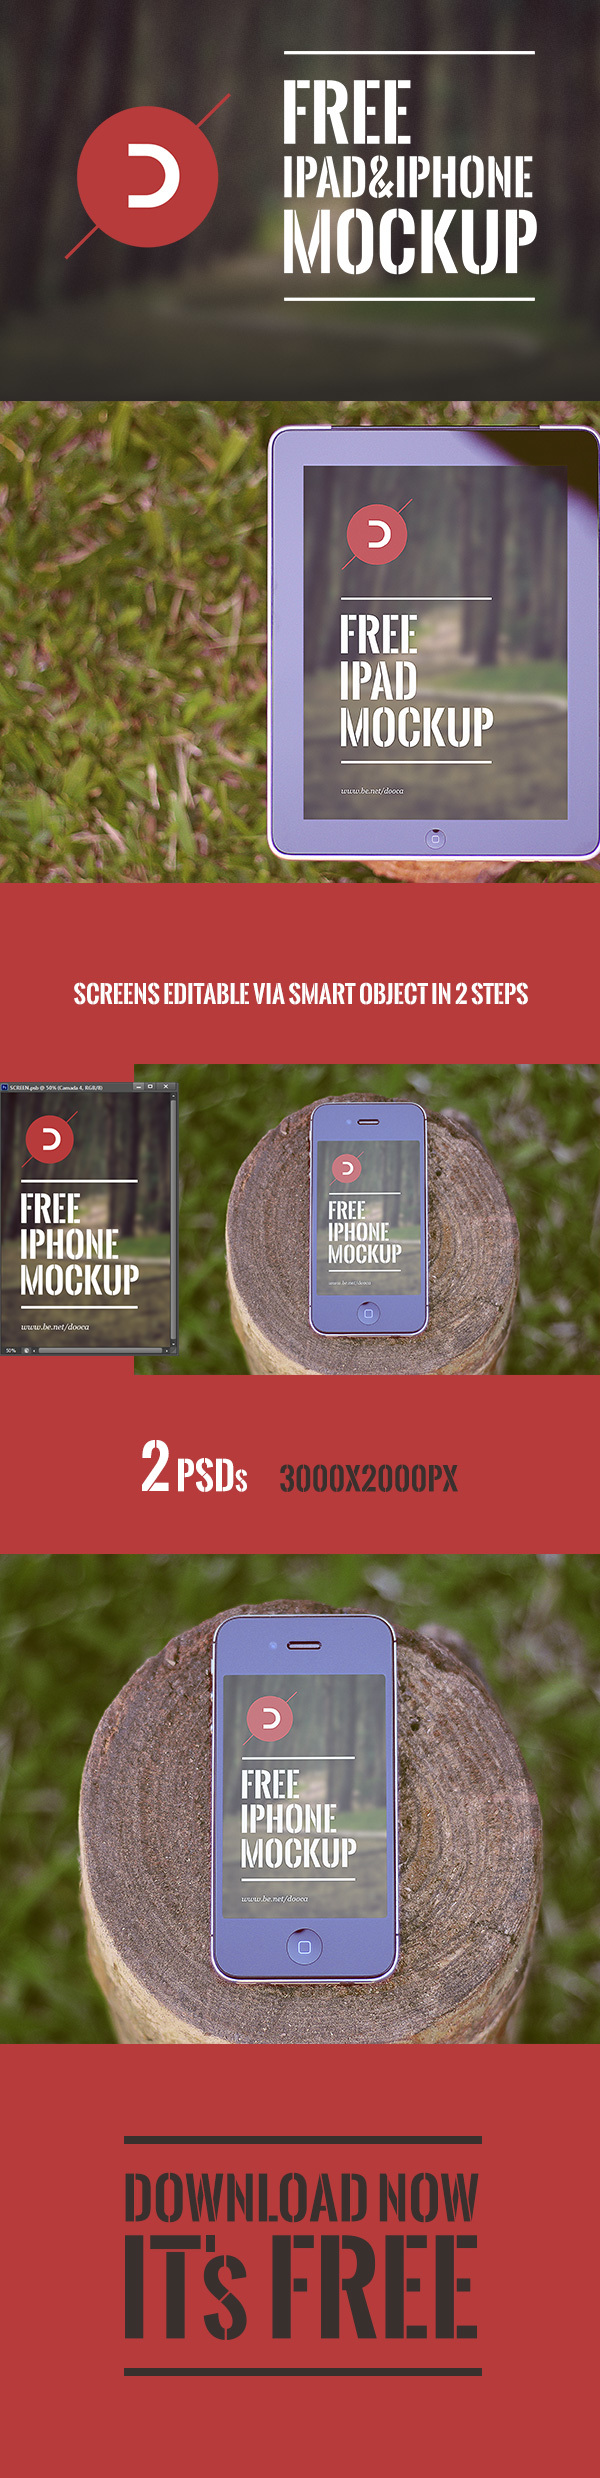 FREE iPad & iPhone Mockup